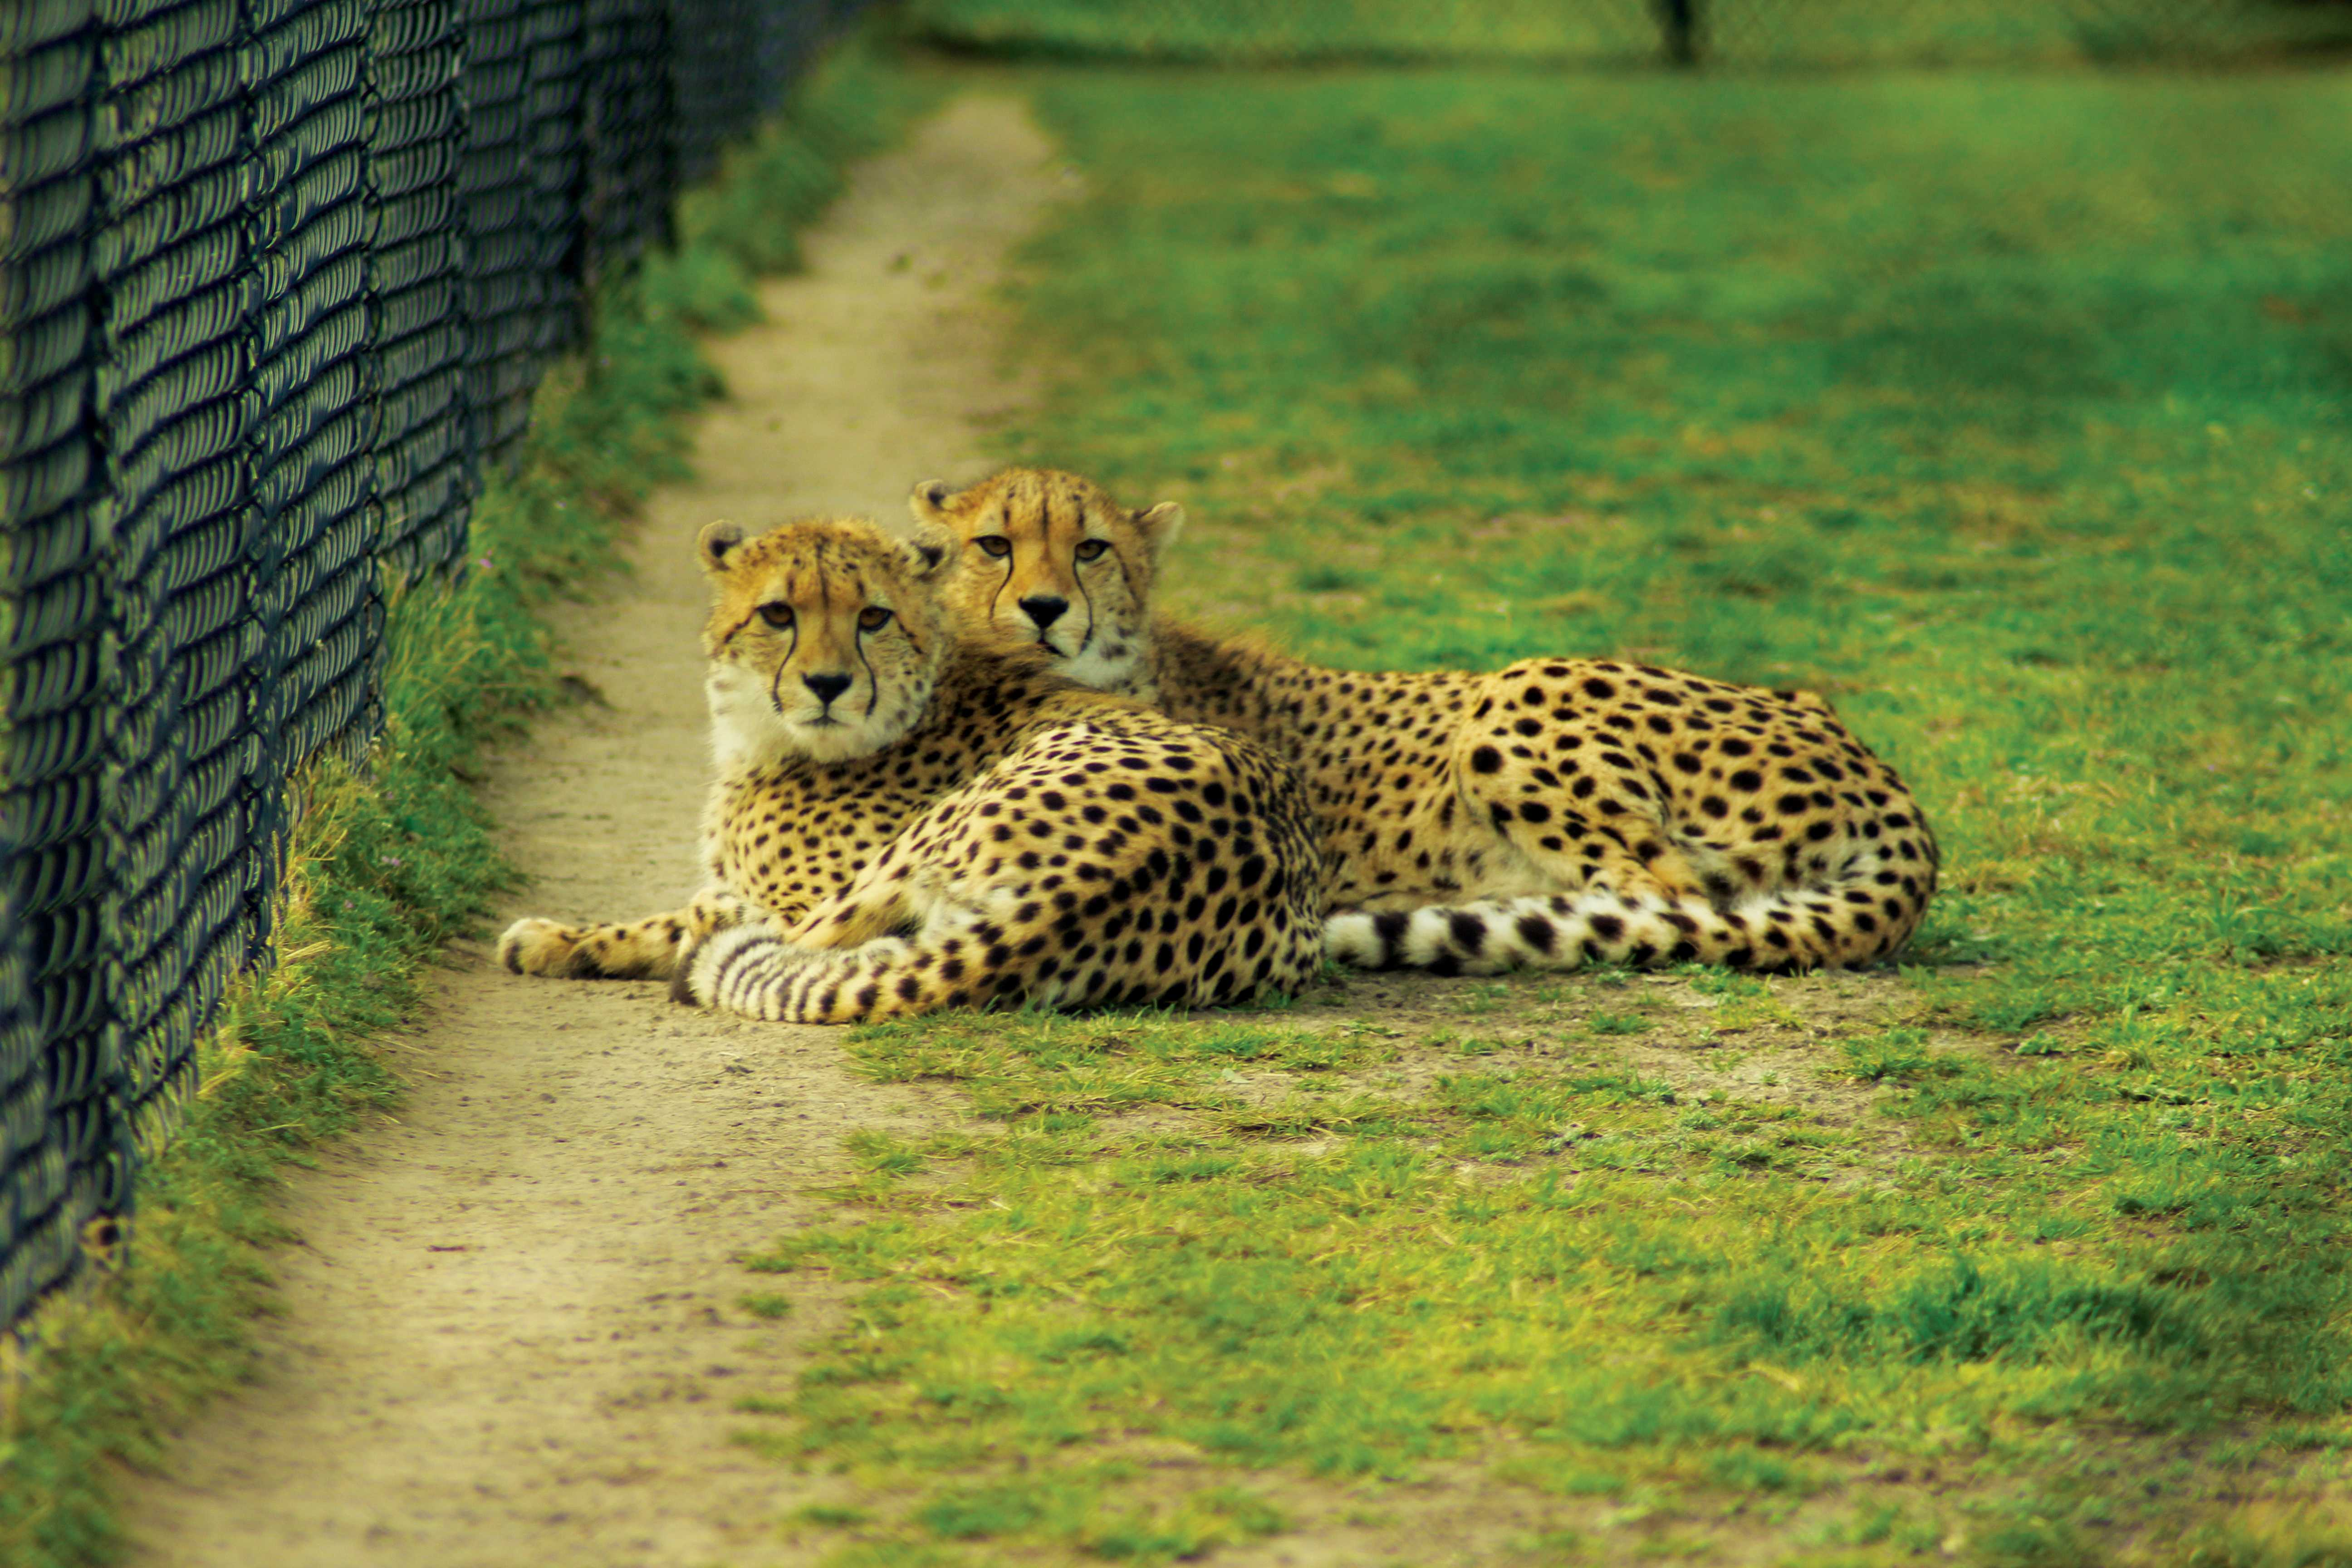 Sibling cheetahs lie near a fence at the Fossil Rim Wildlife Center in Glen Rose, Texas.